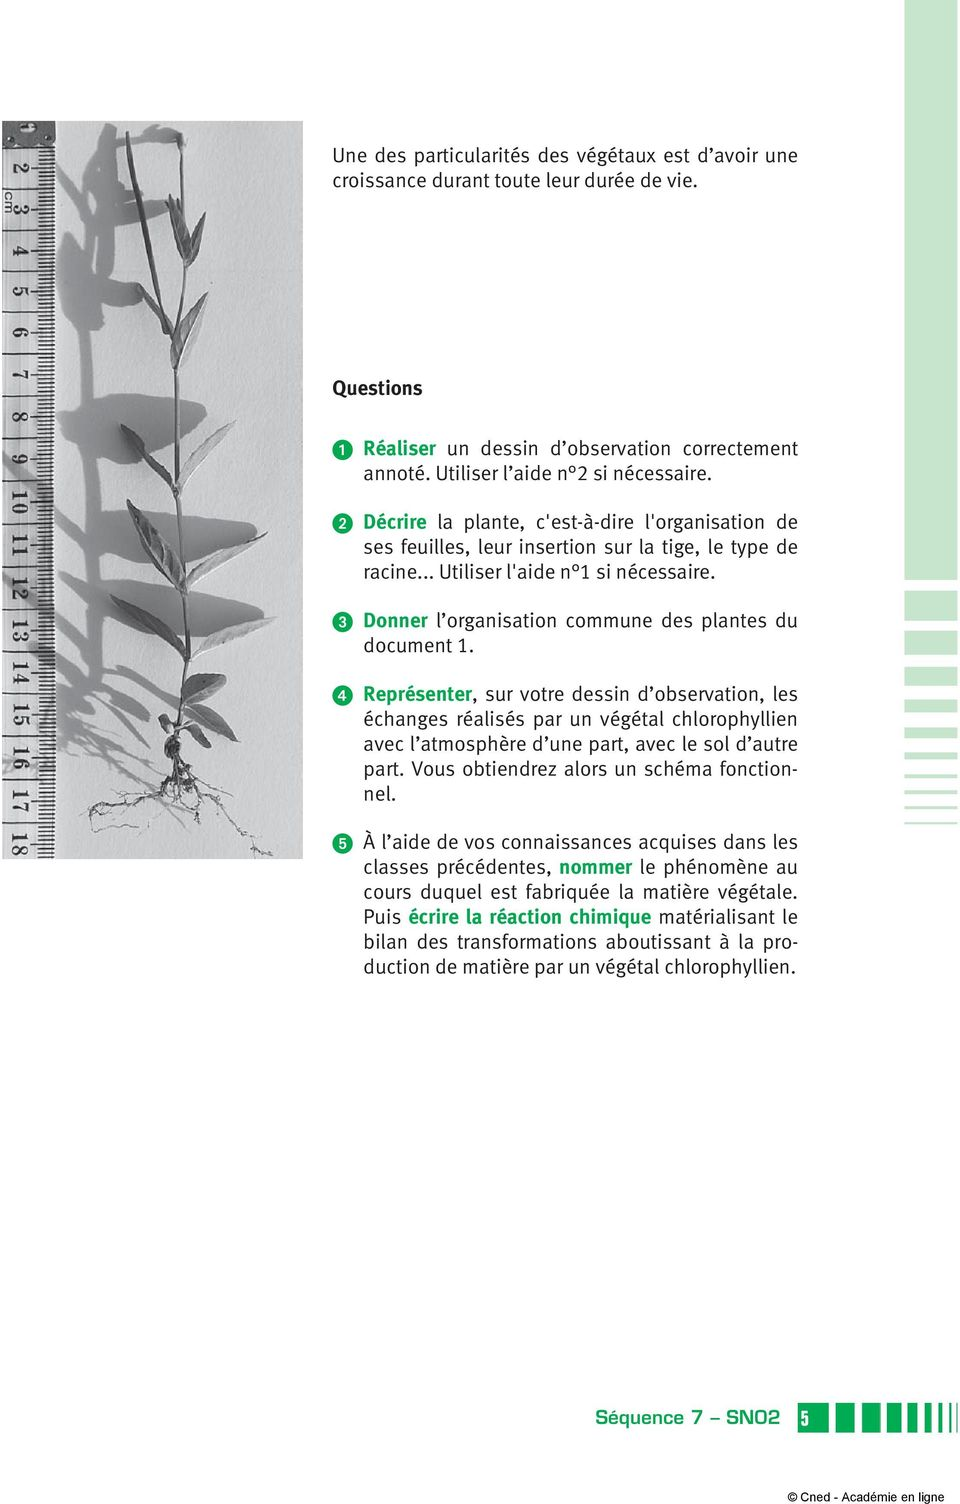 Donner l organisation commune des plantes du document 1.